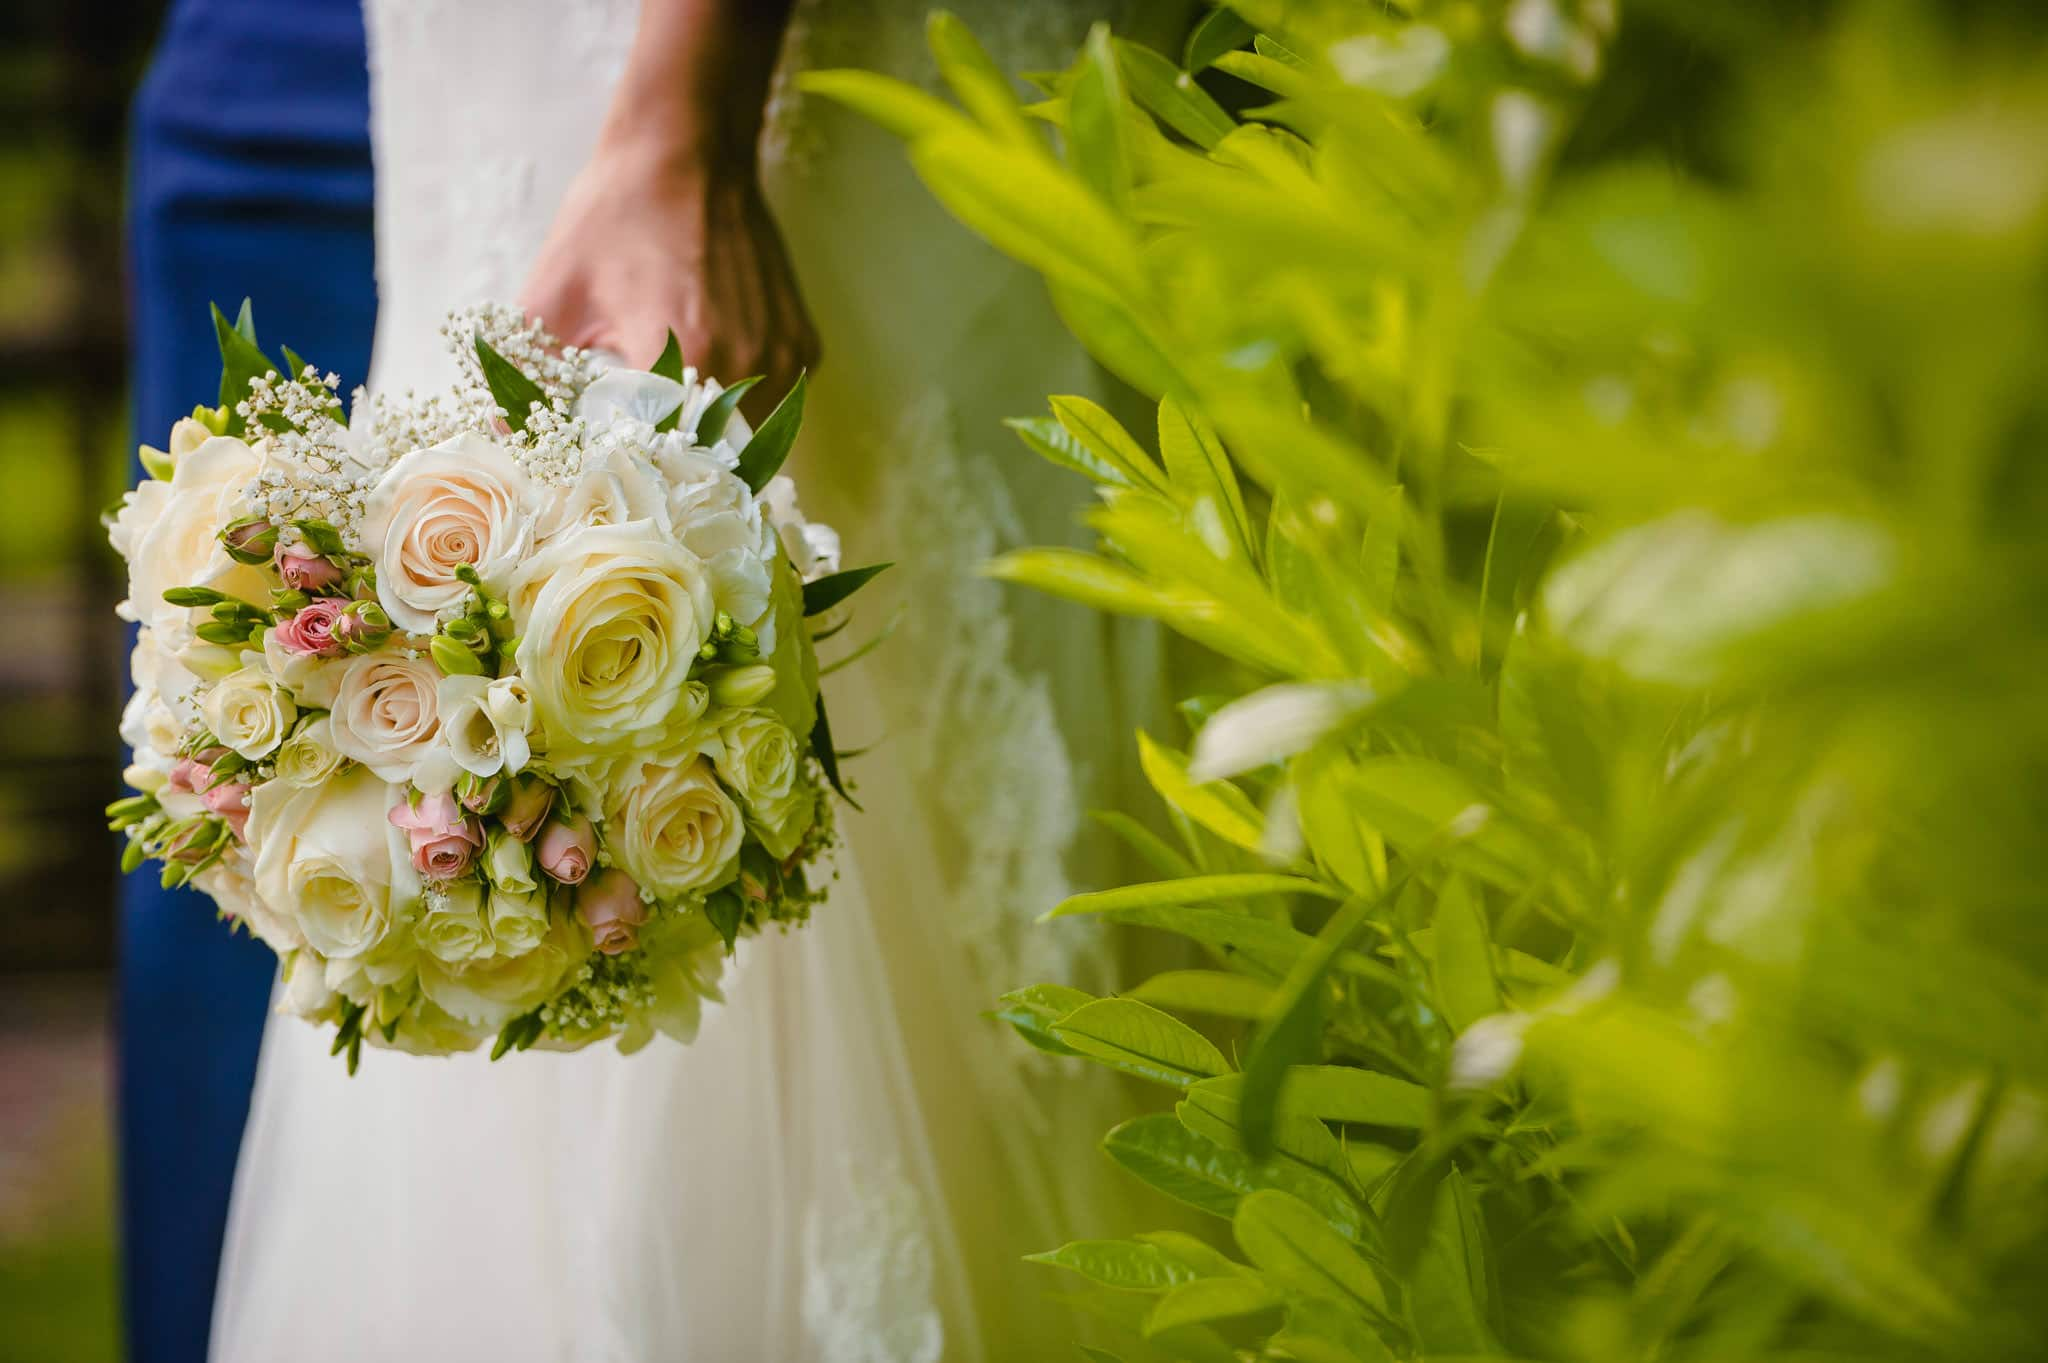 Wedding at Redhouse Barn in Stoke Prior, Worcestershire 177